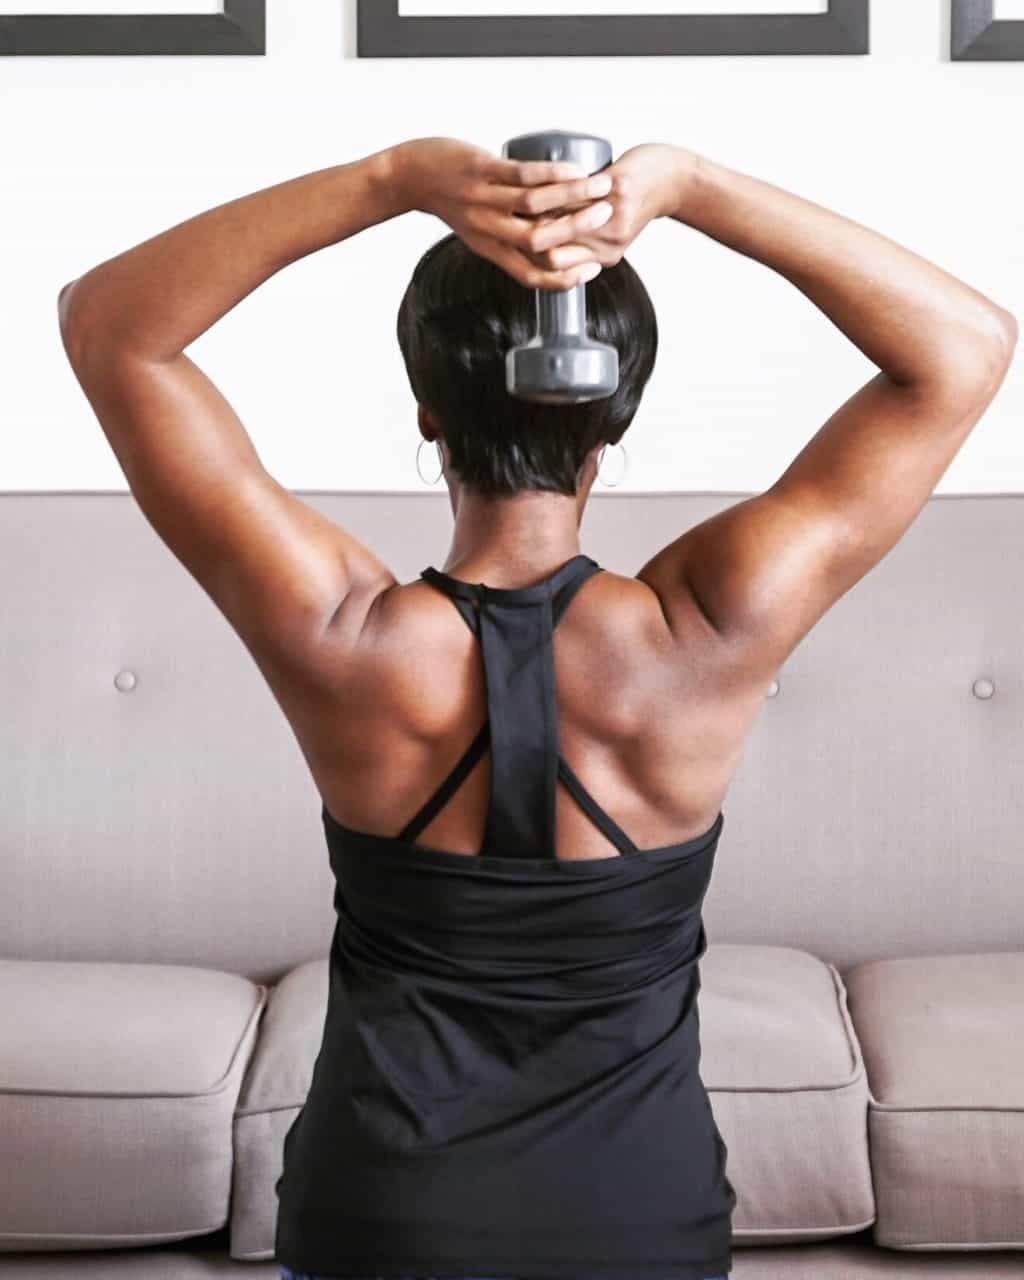 african american woman doing at home workout and showing exercise targeting back muscles t20 ZVmp0N